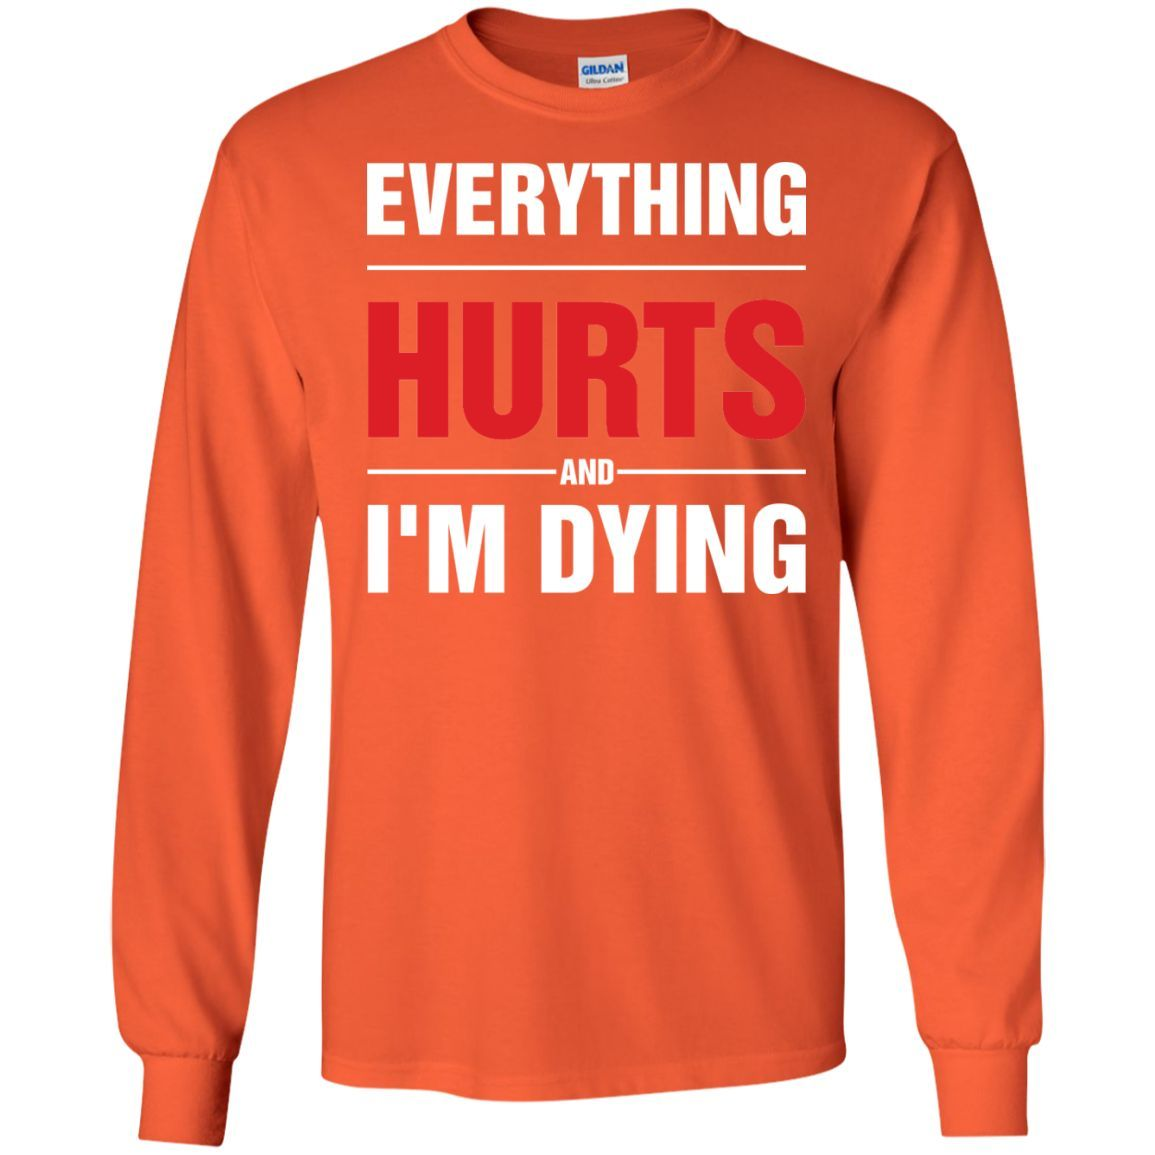 Everything Hurts and I'm Dying -01 LS Ultra Cotton Tshirt